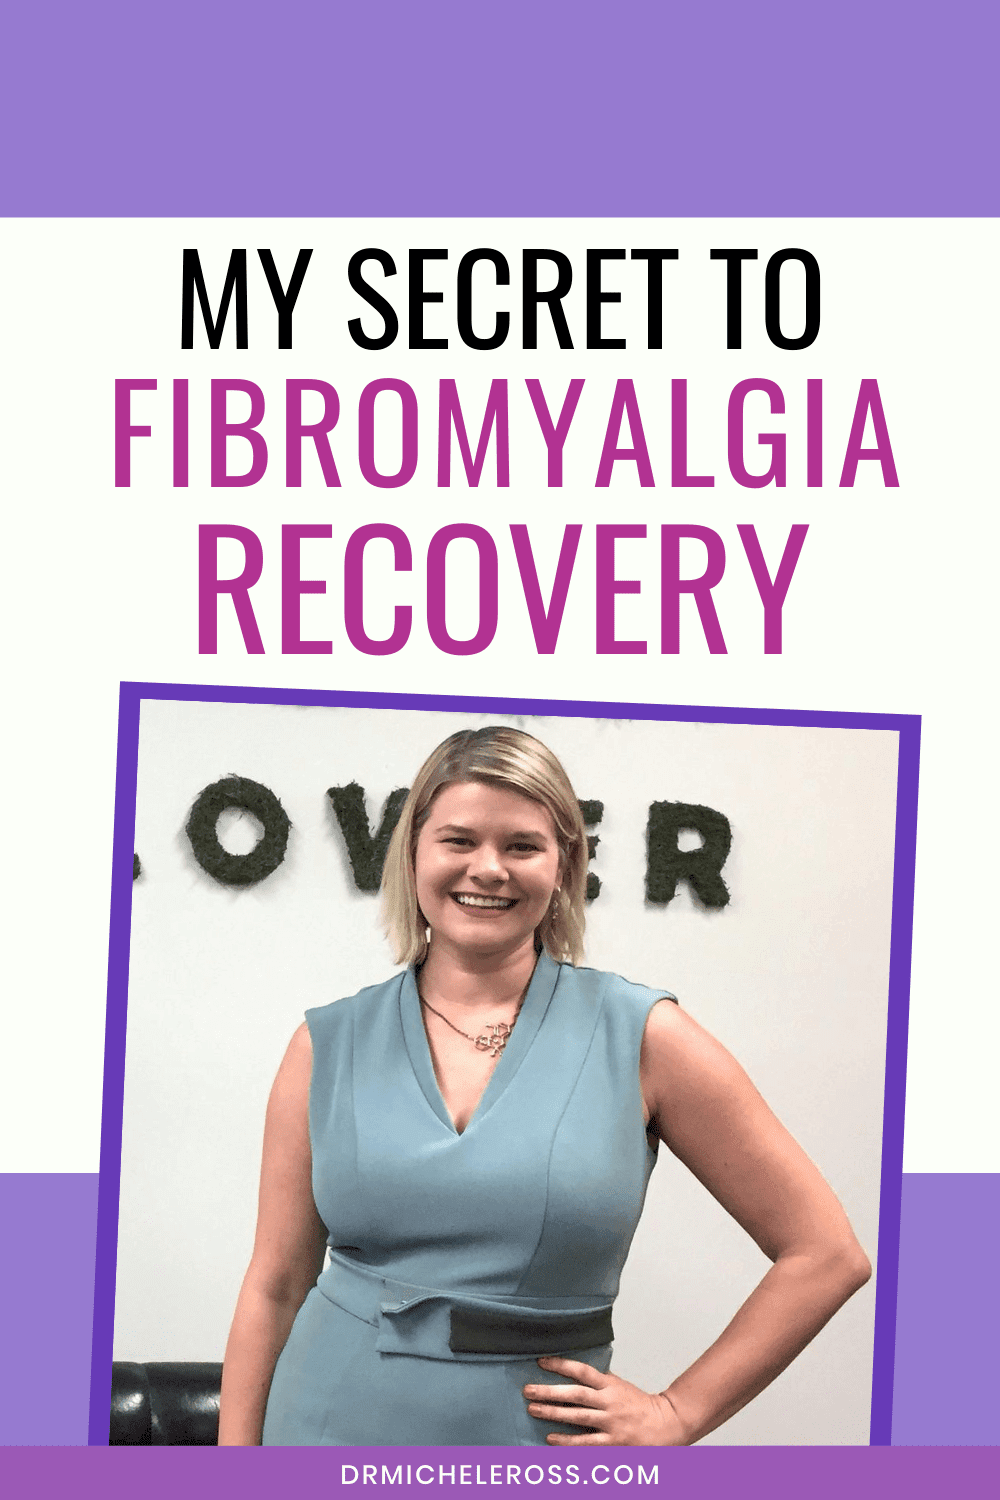 Do You Want To Know My Secret To Fibromyalgia Recovery?